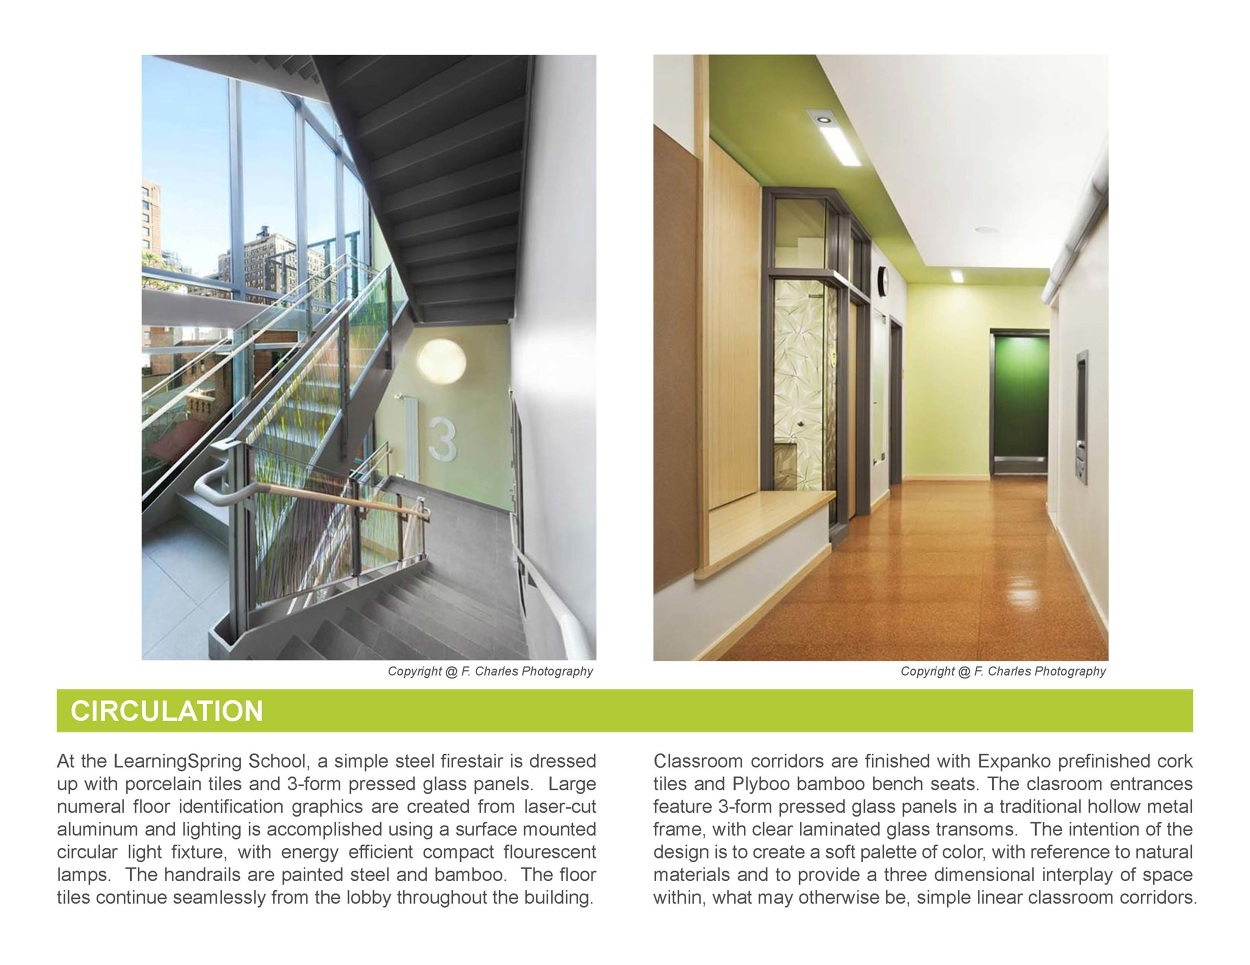 COMMERCIAL: Office Interiors